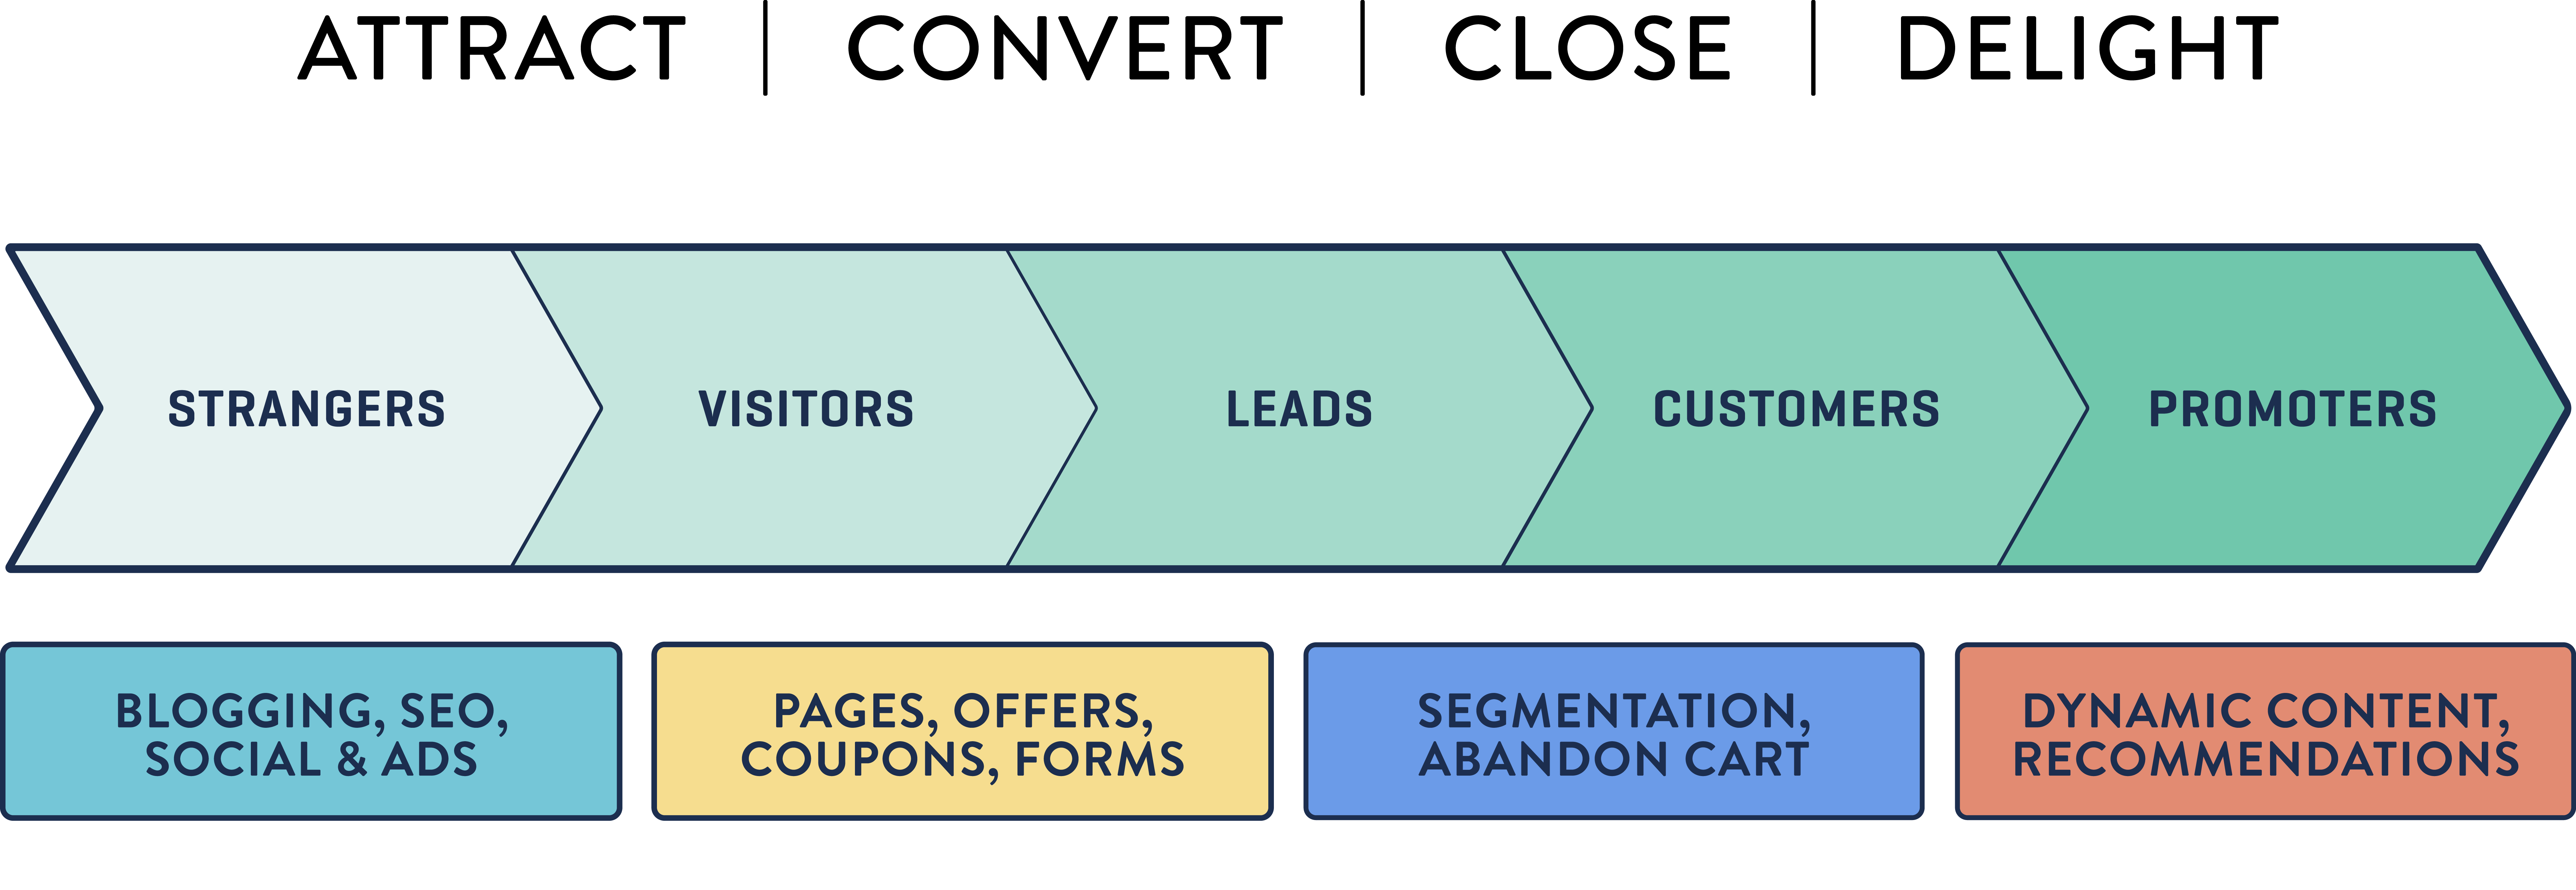 Ascend Ecommerce Customer Journey-992298-edited